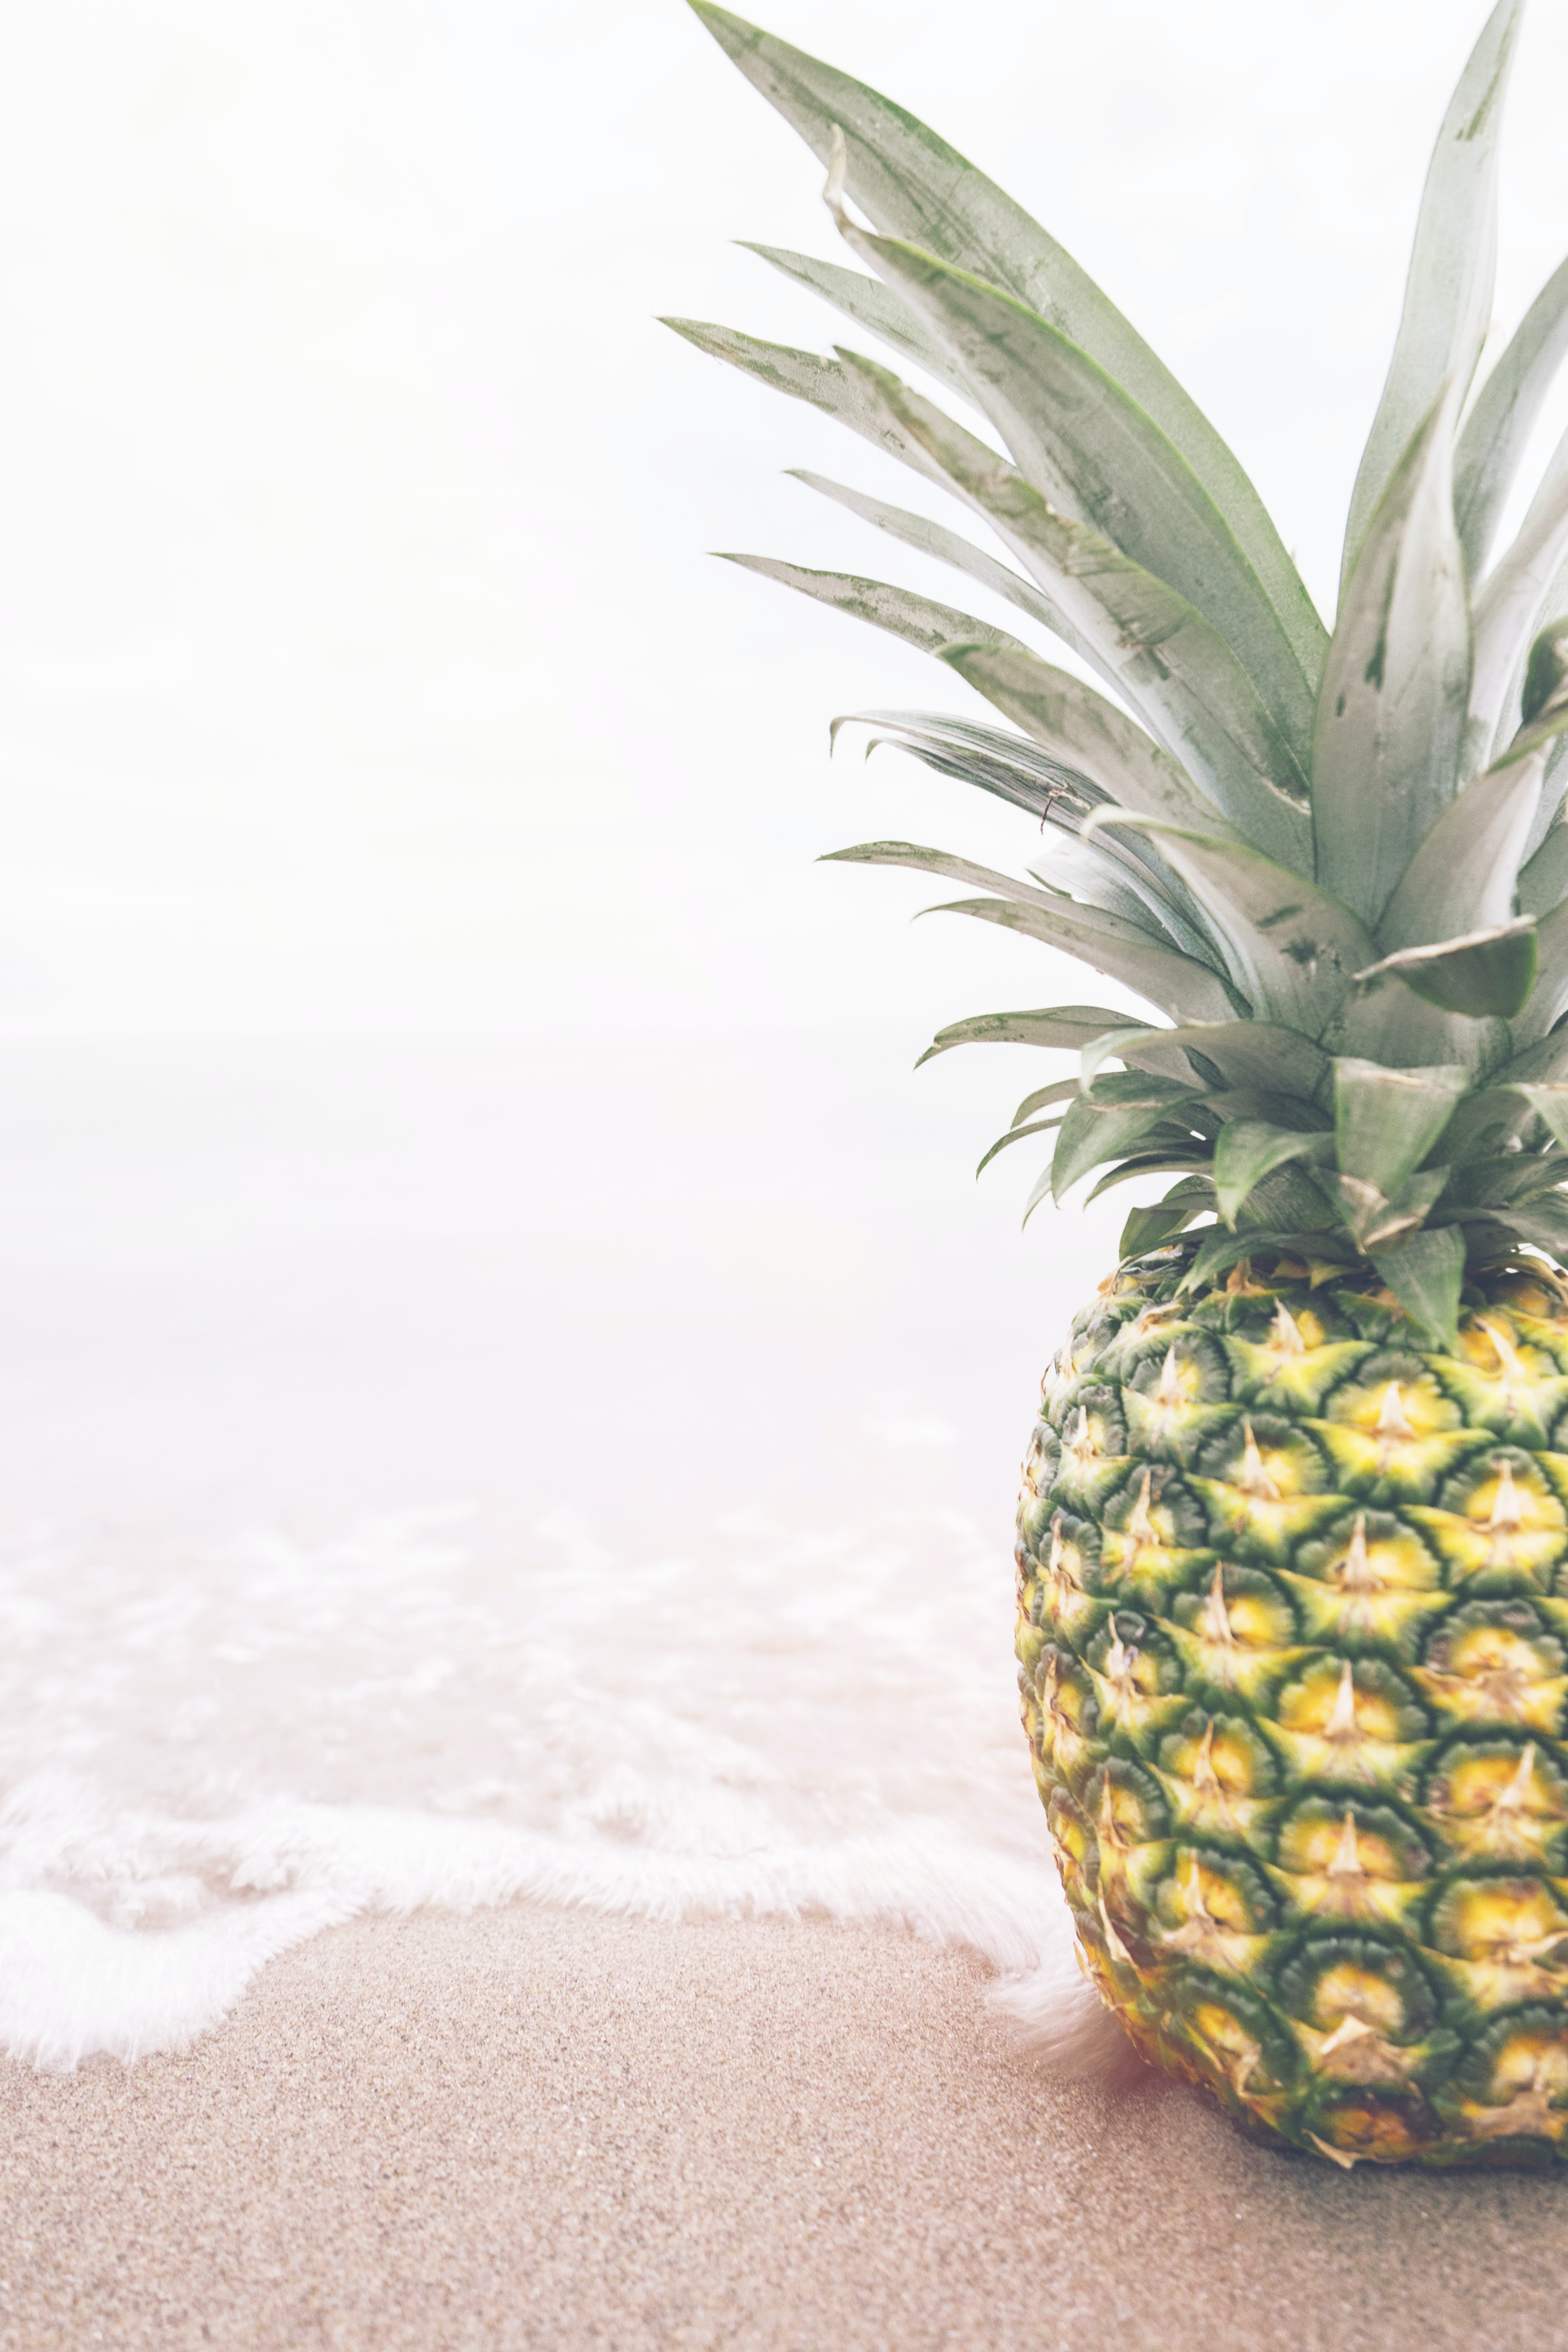 pineapple on the beach photo by pineapple supply co